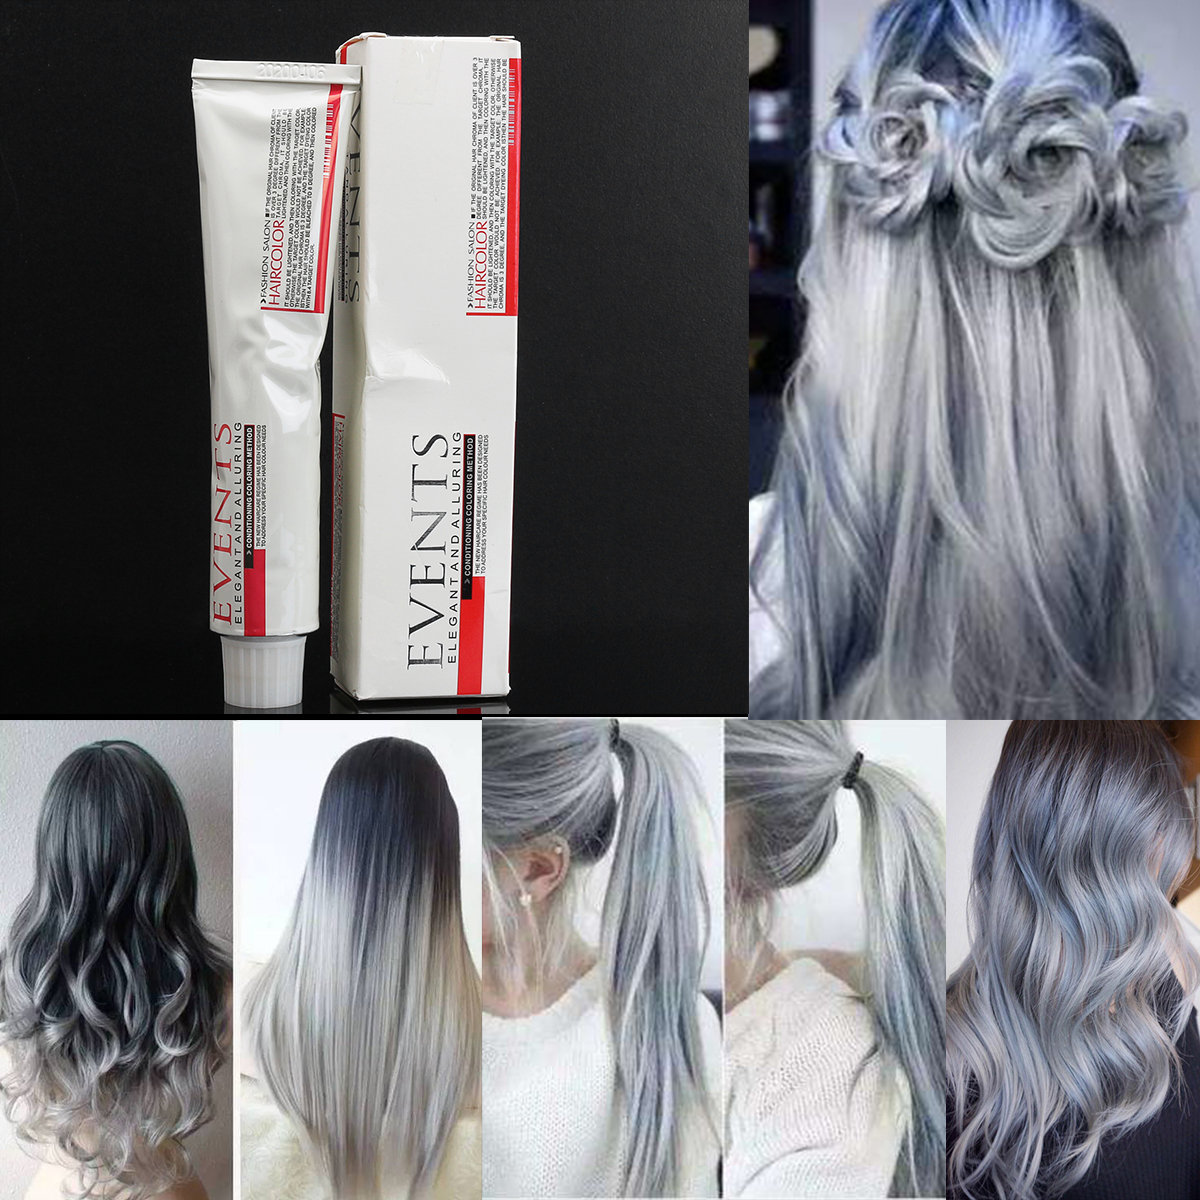 Light Grey Hair Dye Color Cream Fashion Styling DIY para homens Mulheres